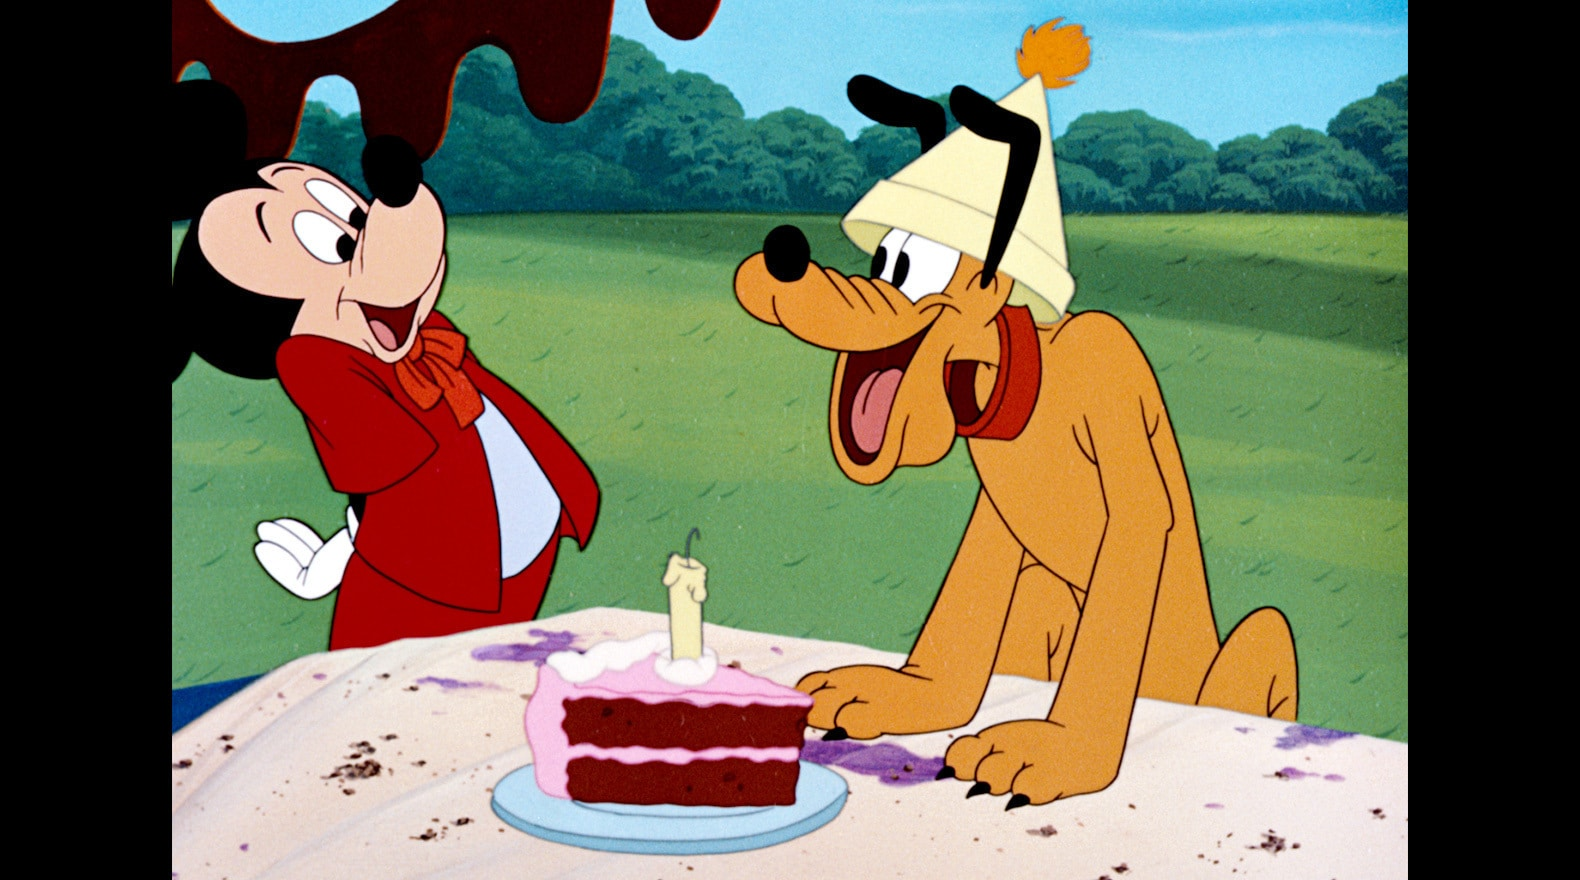 Even Pluto knows that party hats make a birthday extra special.